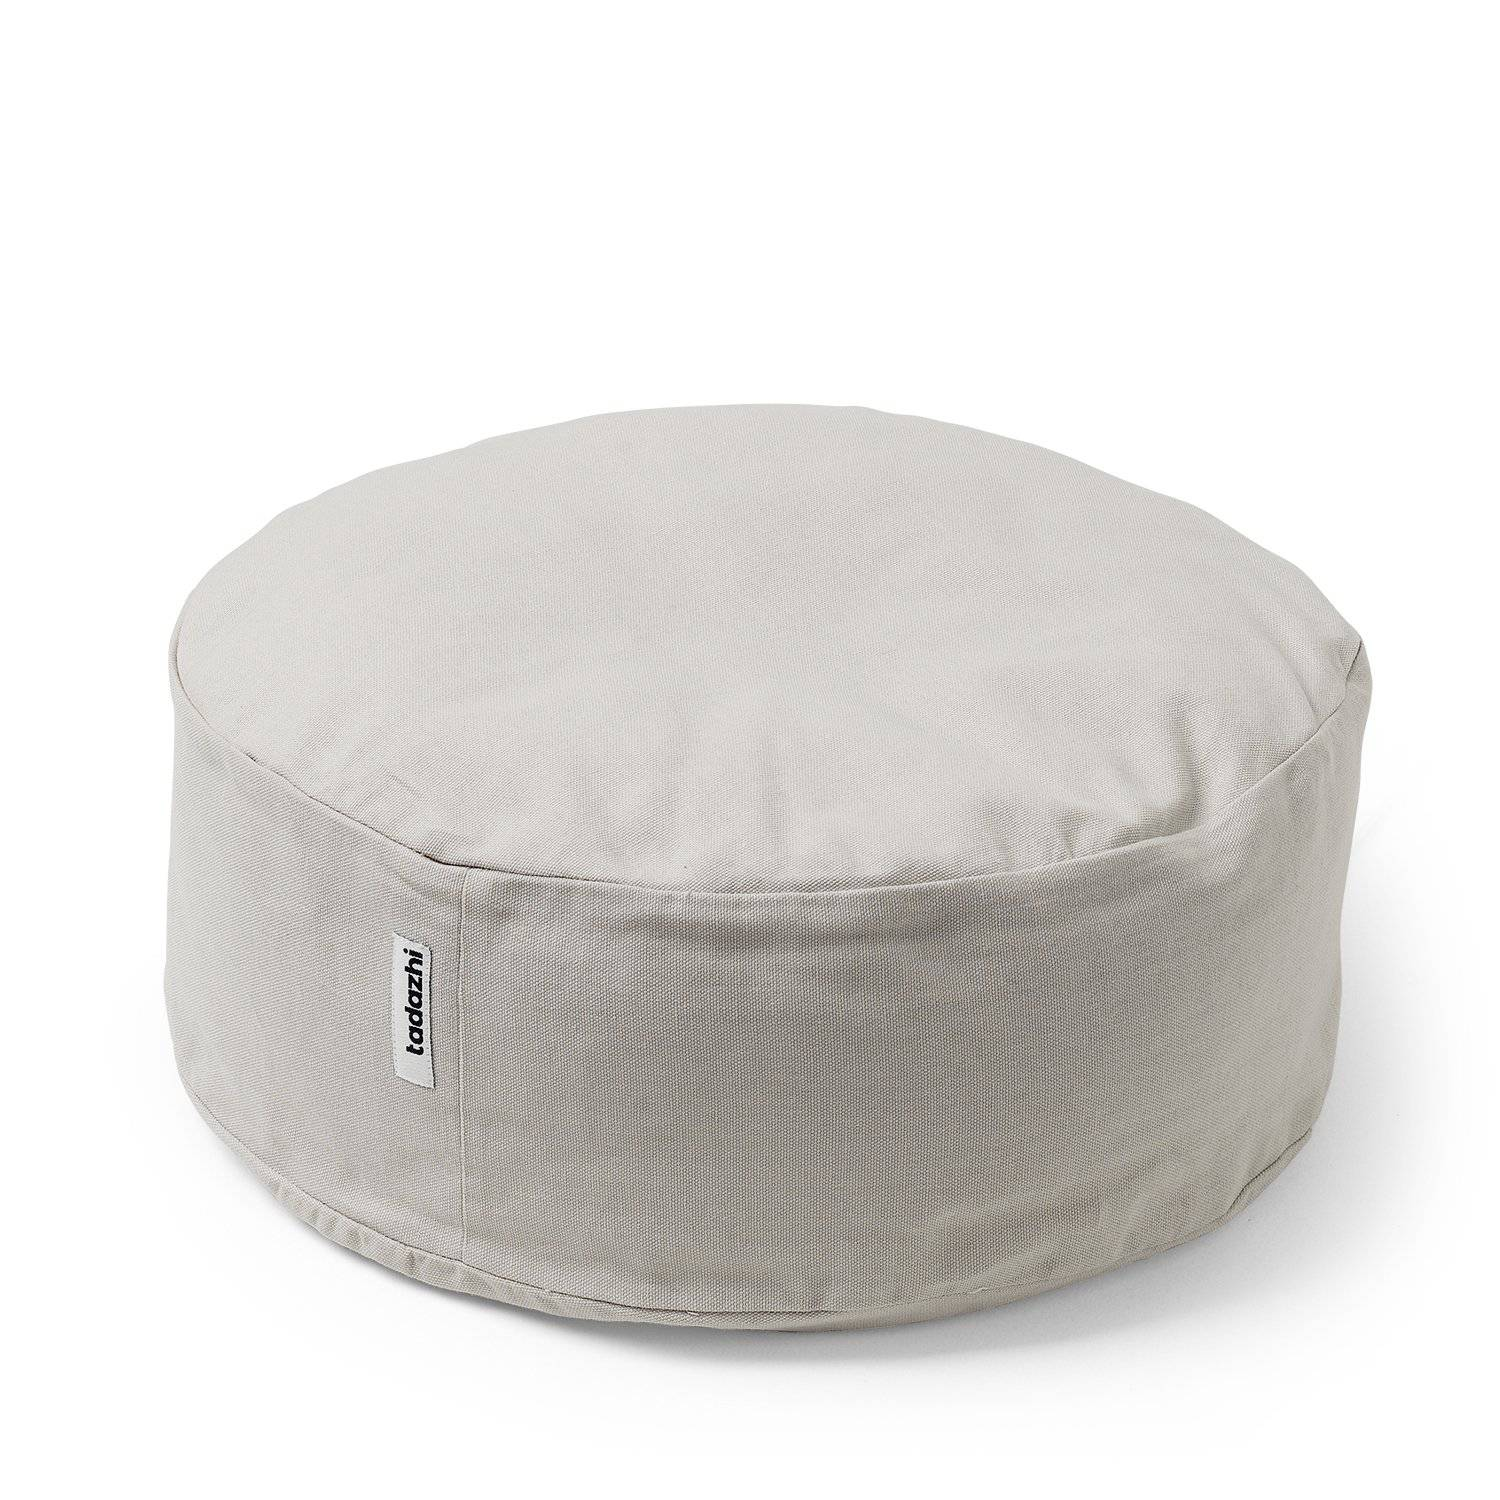 Sandy Beige - Raised Circular Cushion Bed - Holler Brighton